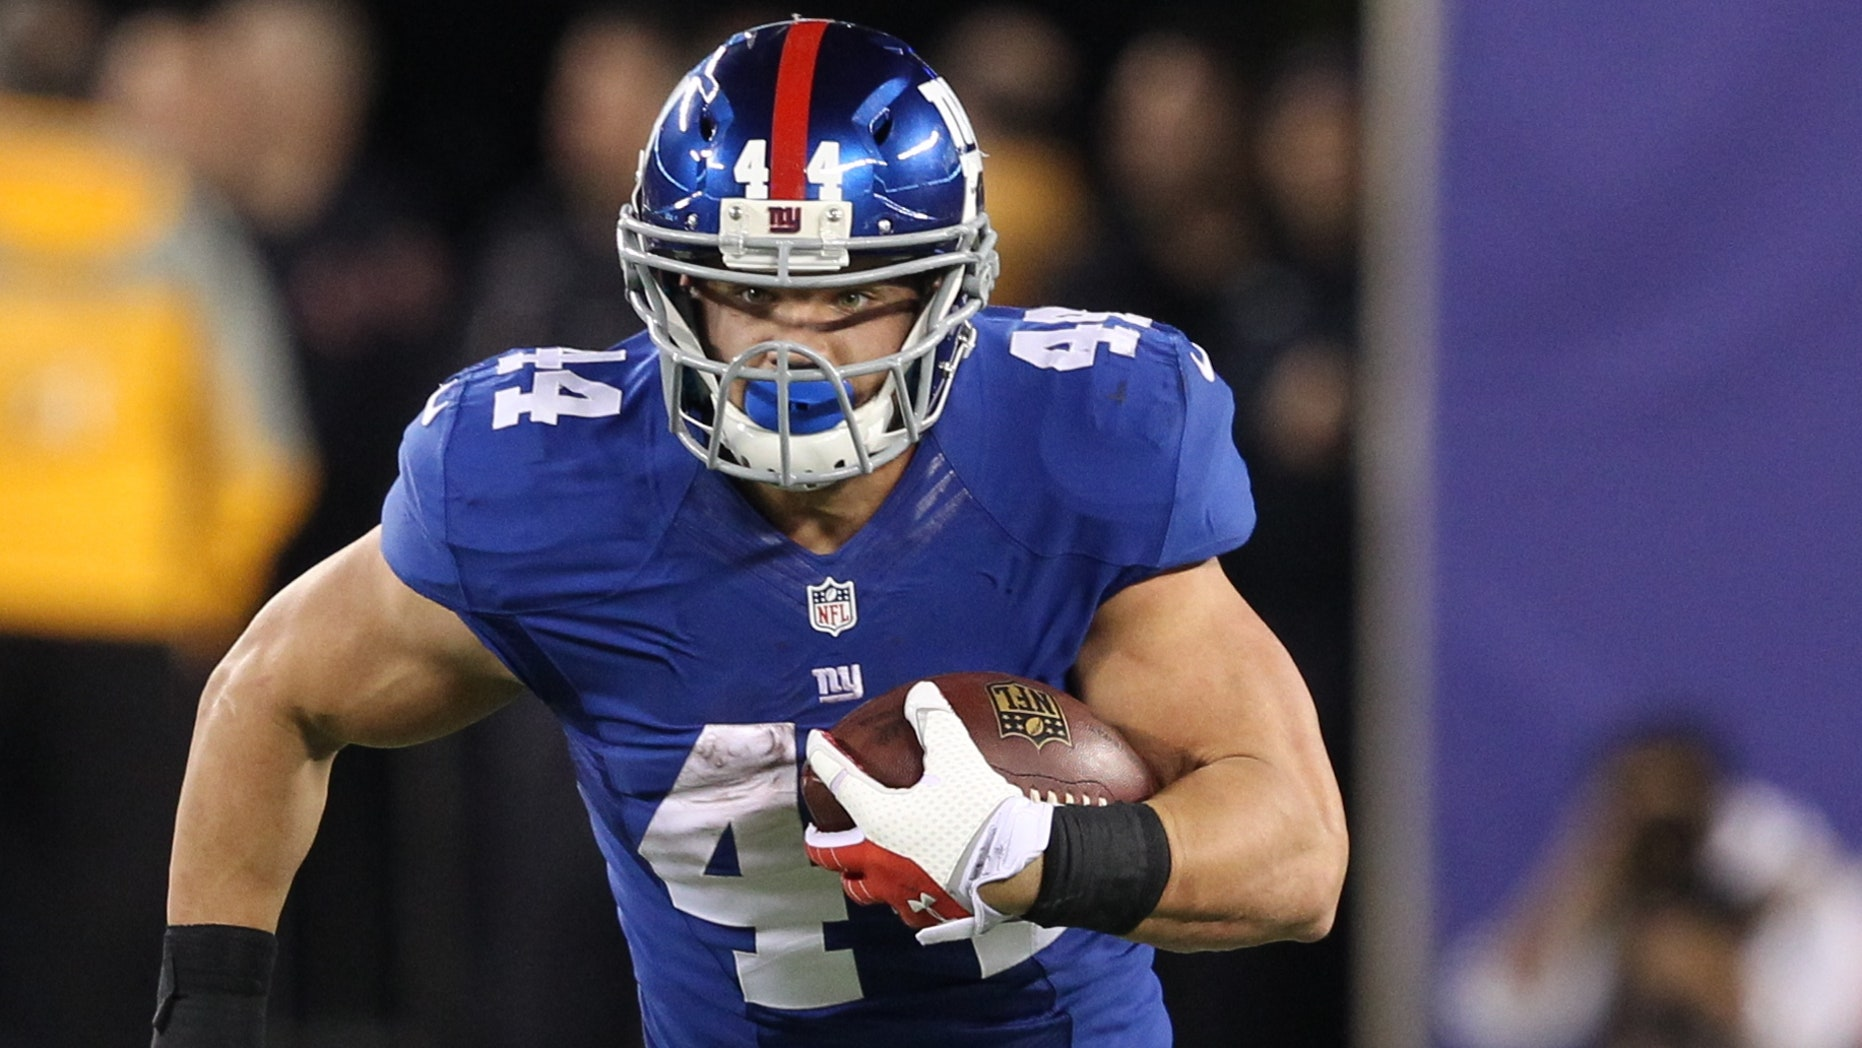 New York Giants' Peyton Hillis (44) rushes during the second half of an NFL football game against the Minnesota Vikings Monday, Oct. 21, 2013 in East Rutherford, N.J. (AP Photo/Peter Morgan)